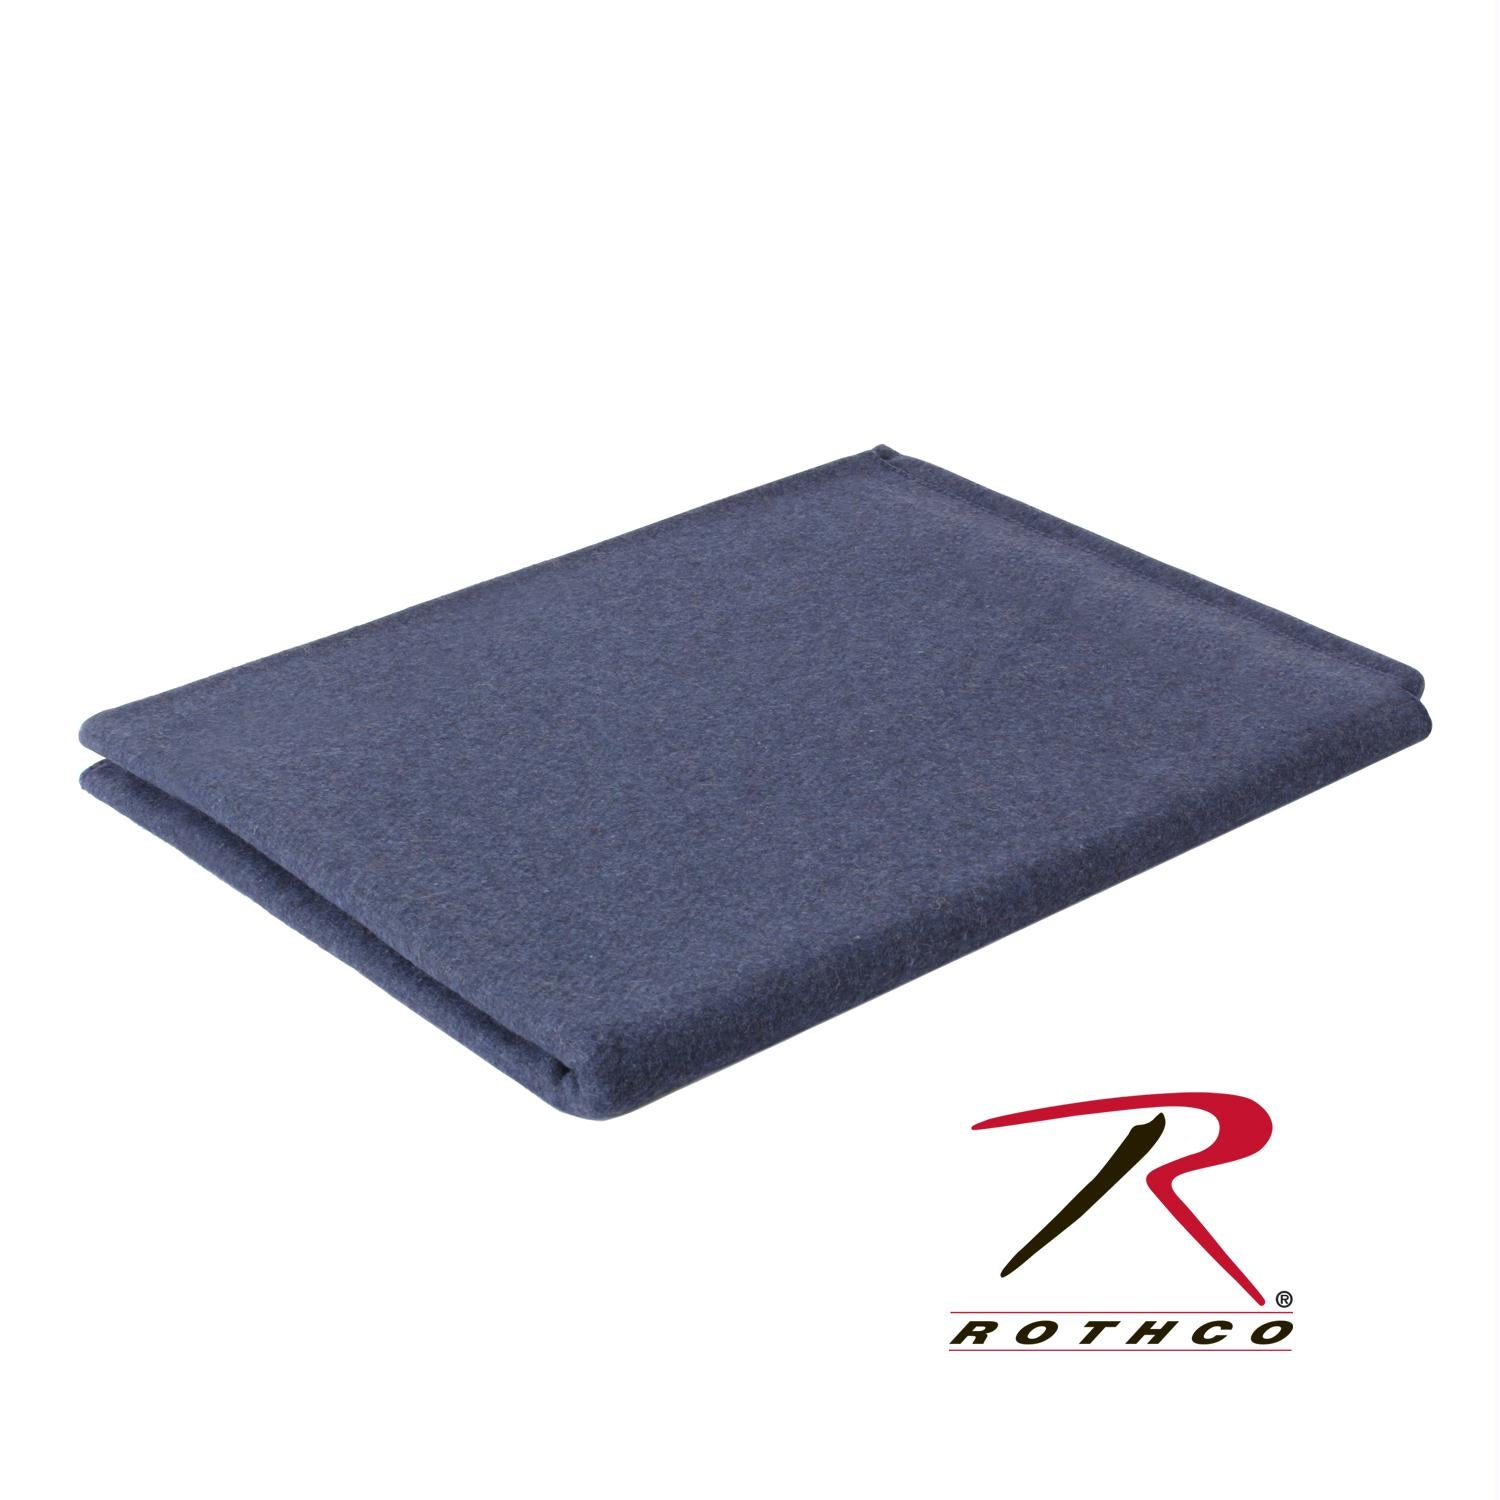 Rothco Wool Blanket - Navy Blue / 62